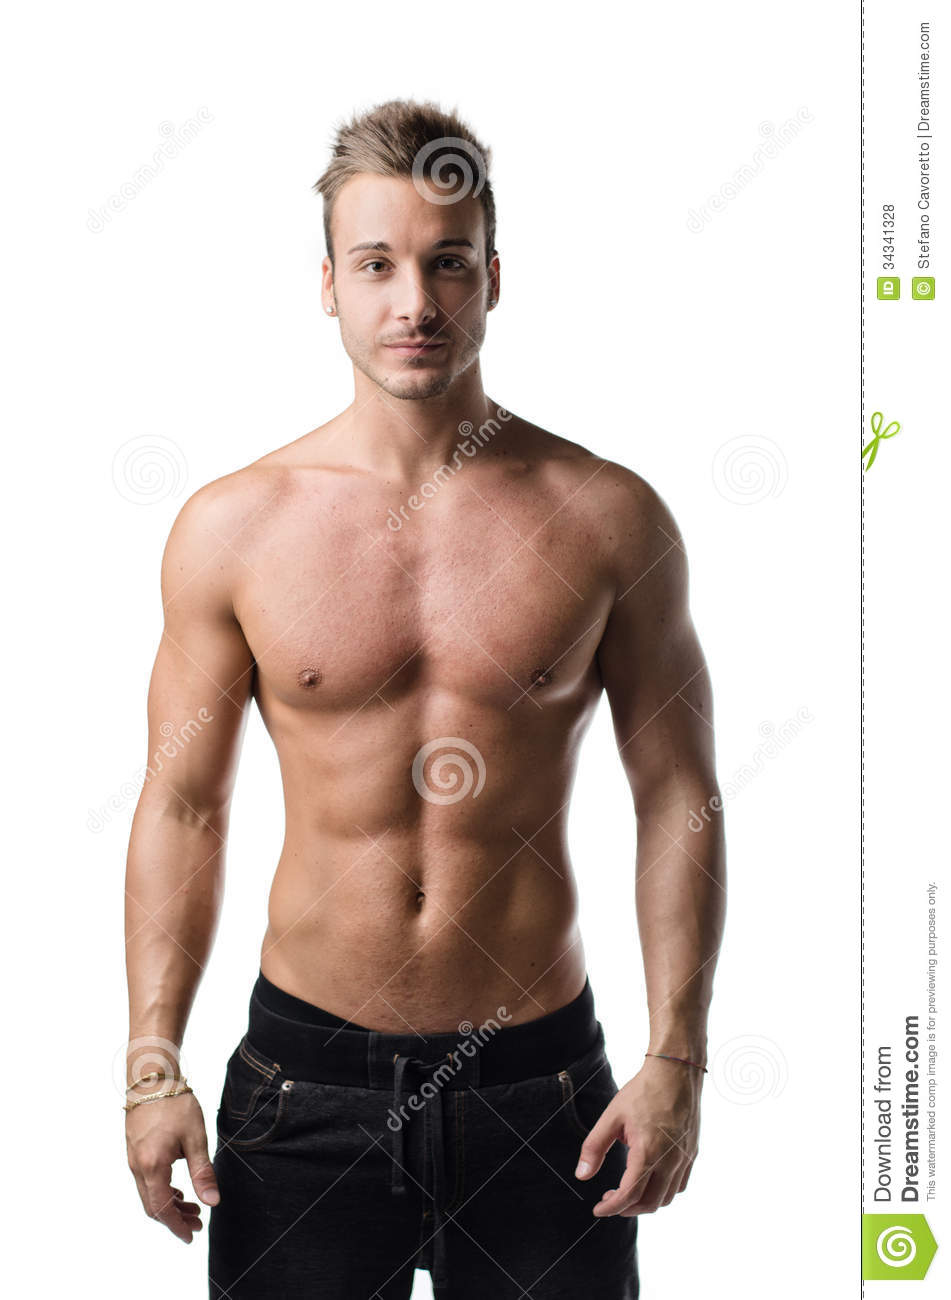 Question For The Muscular Kind Male First Time Post